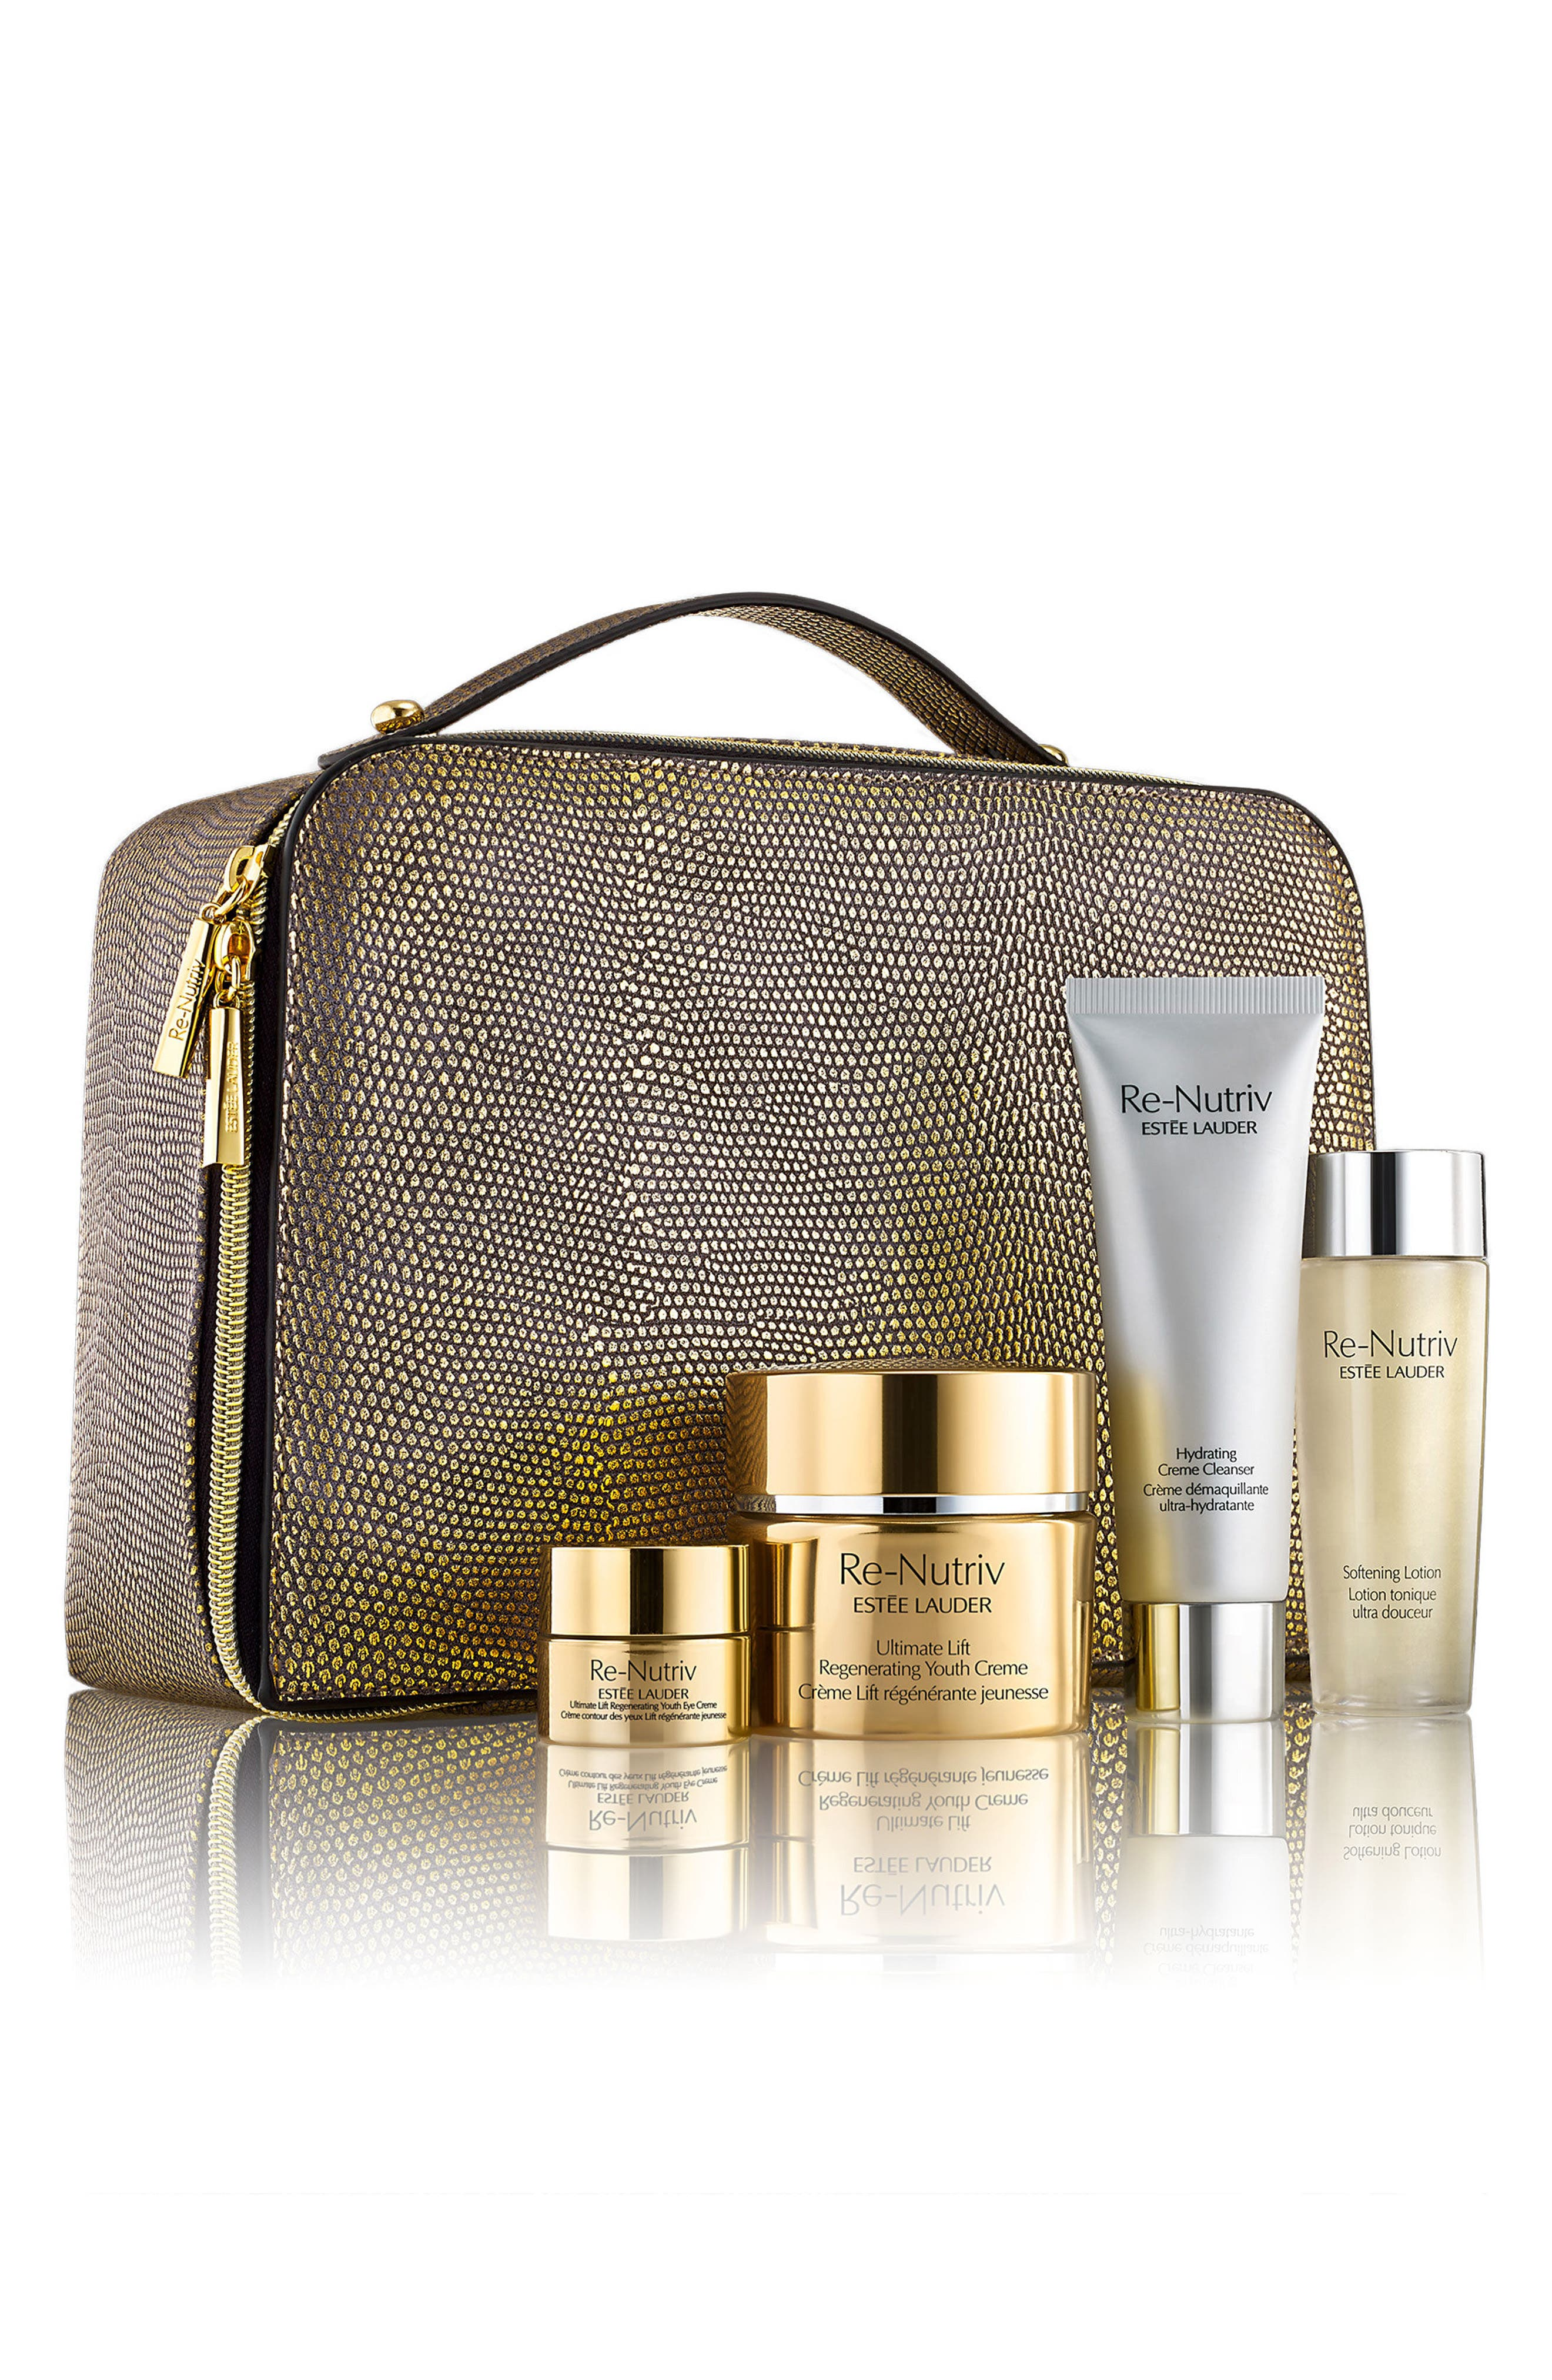 The Secret of Infinite Beauty Ultimate Lift Regenerating Youth Collection for Face,                         Main,                         color, No Color